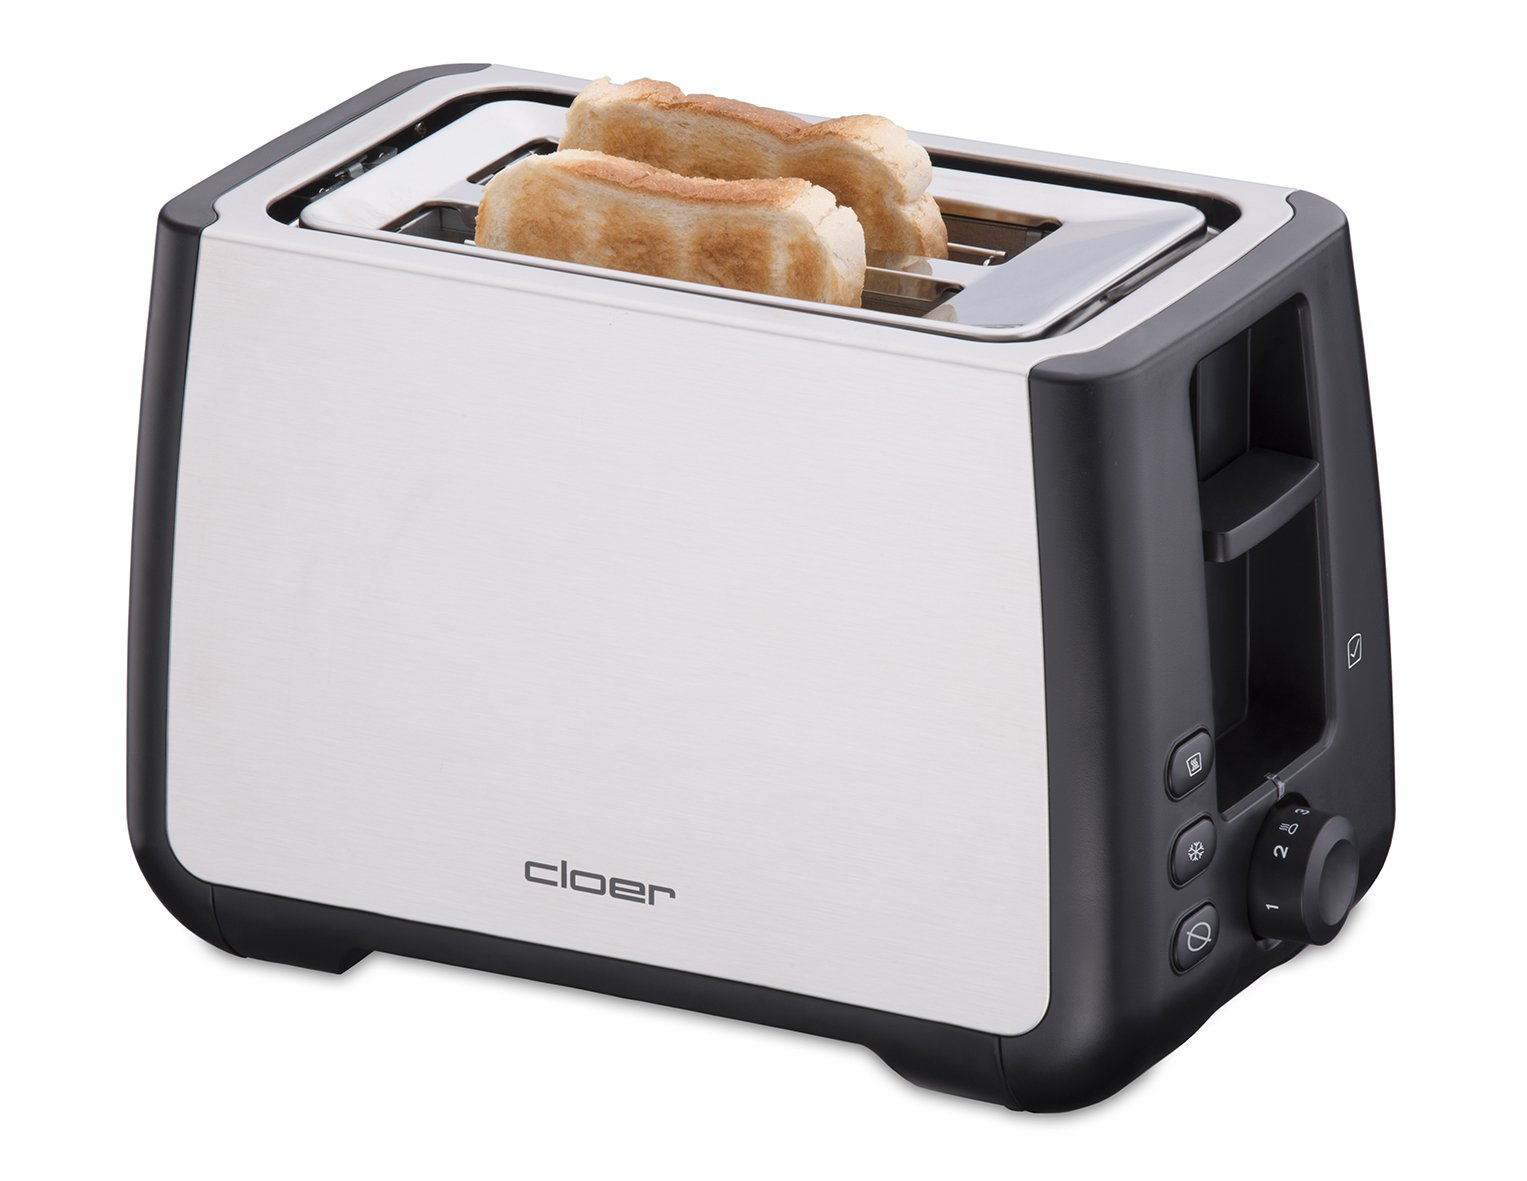 Cloer-King-Size-Toaster